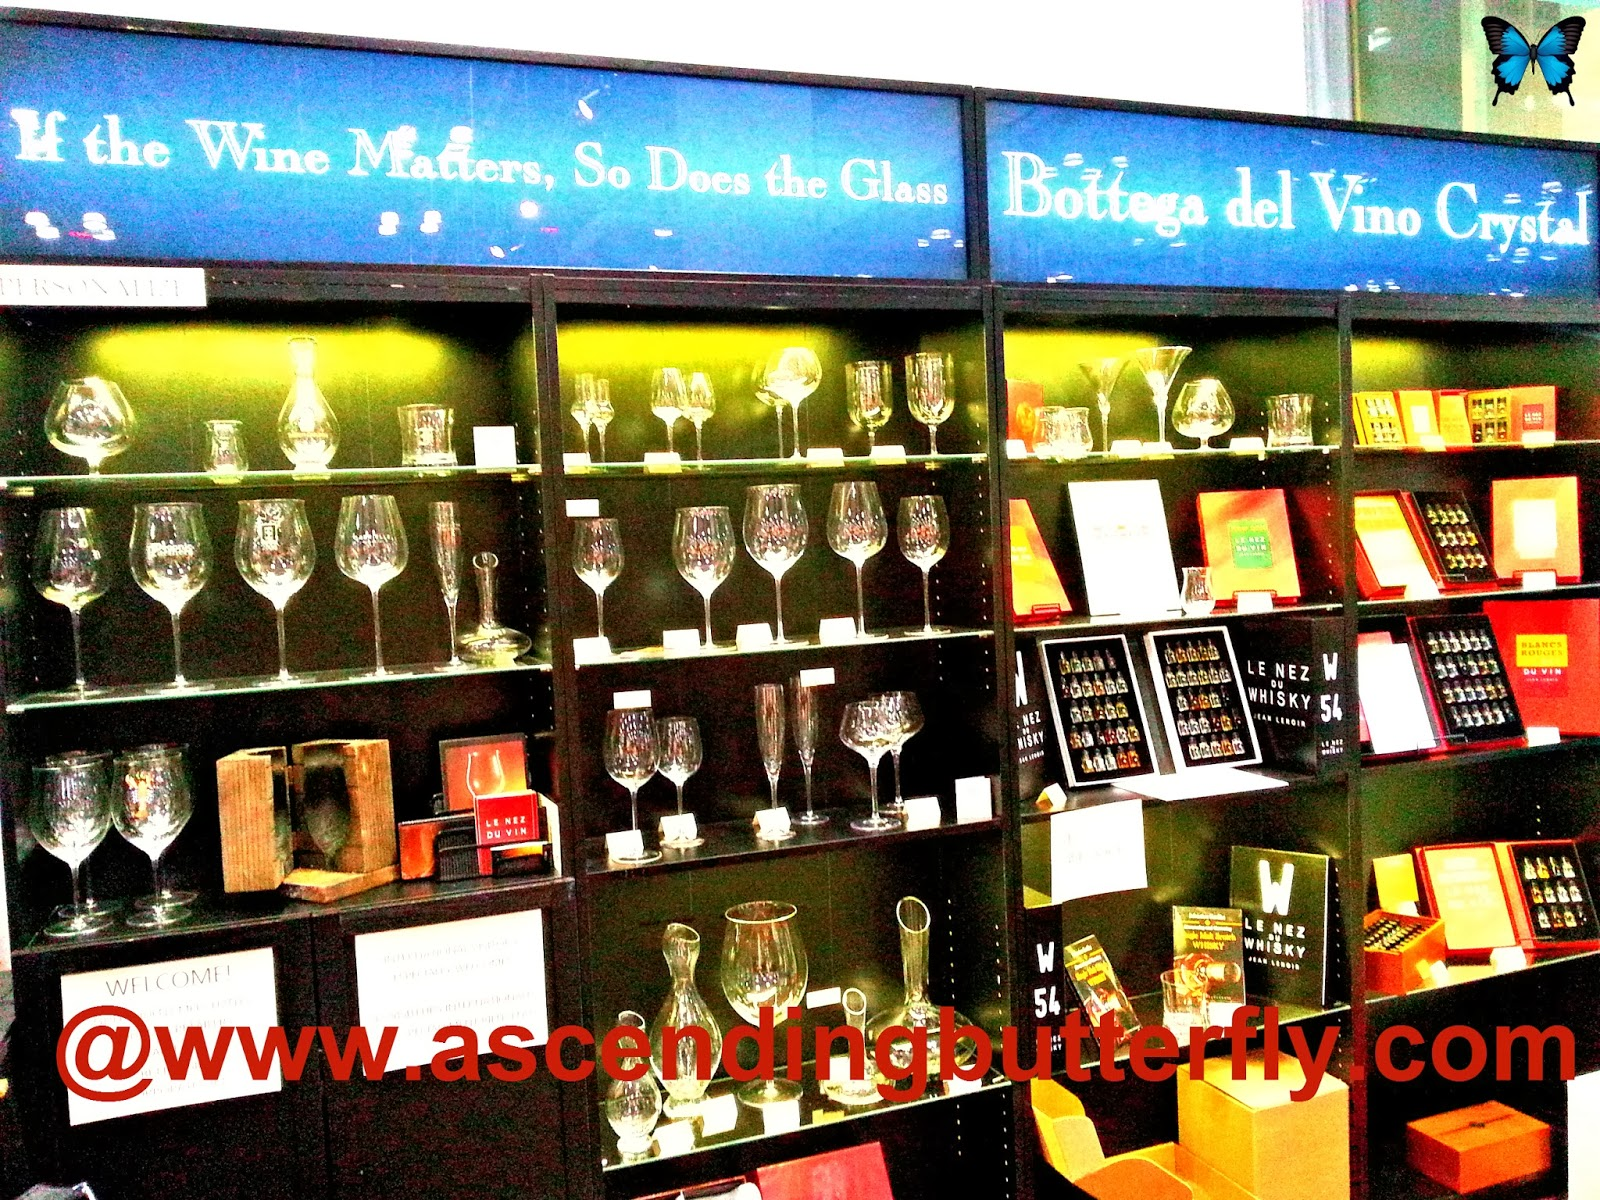 Bottega del Vino Crystal Display Exhibitor Booth at February 2014 NY Now Trade-show